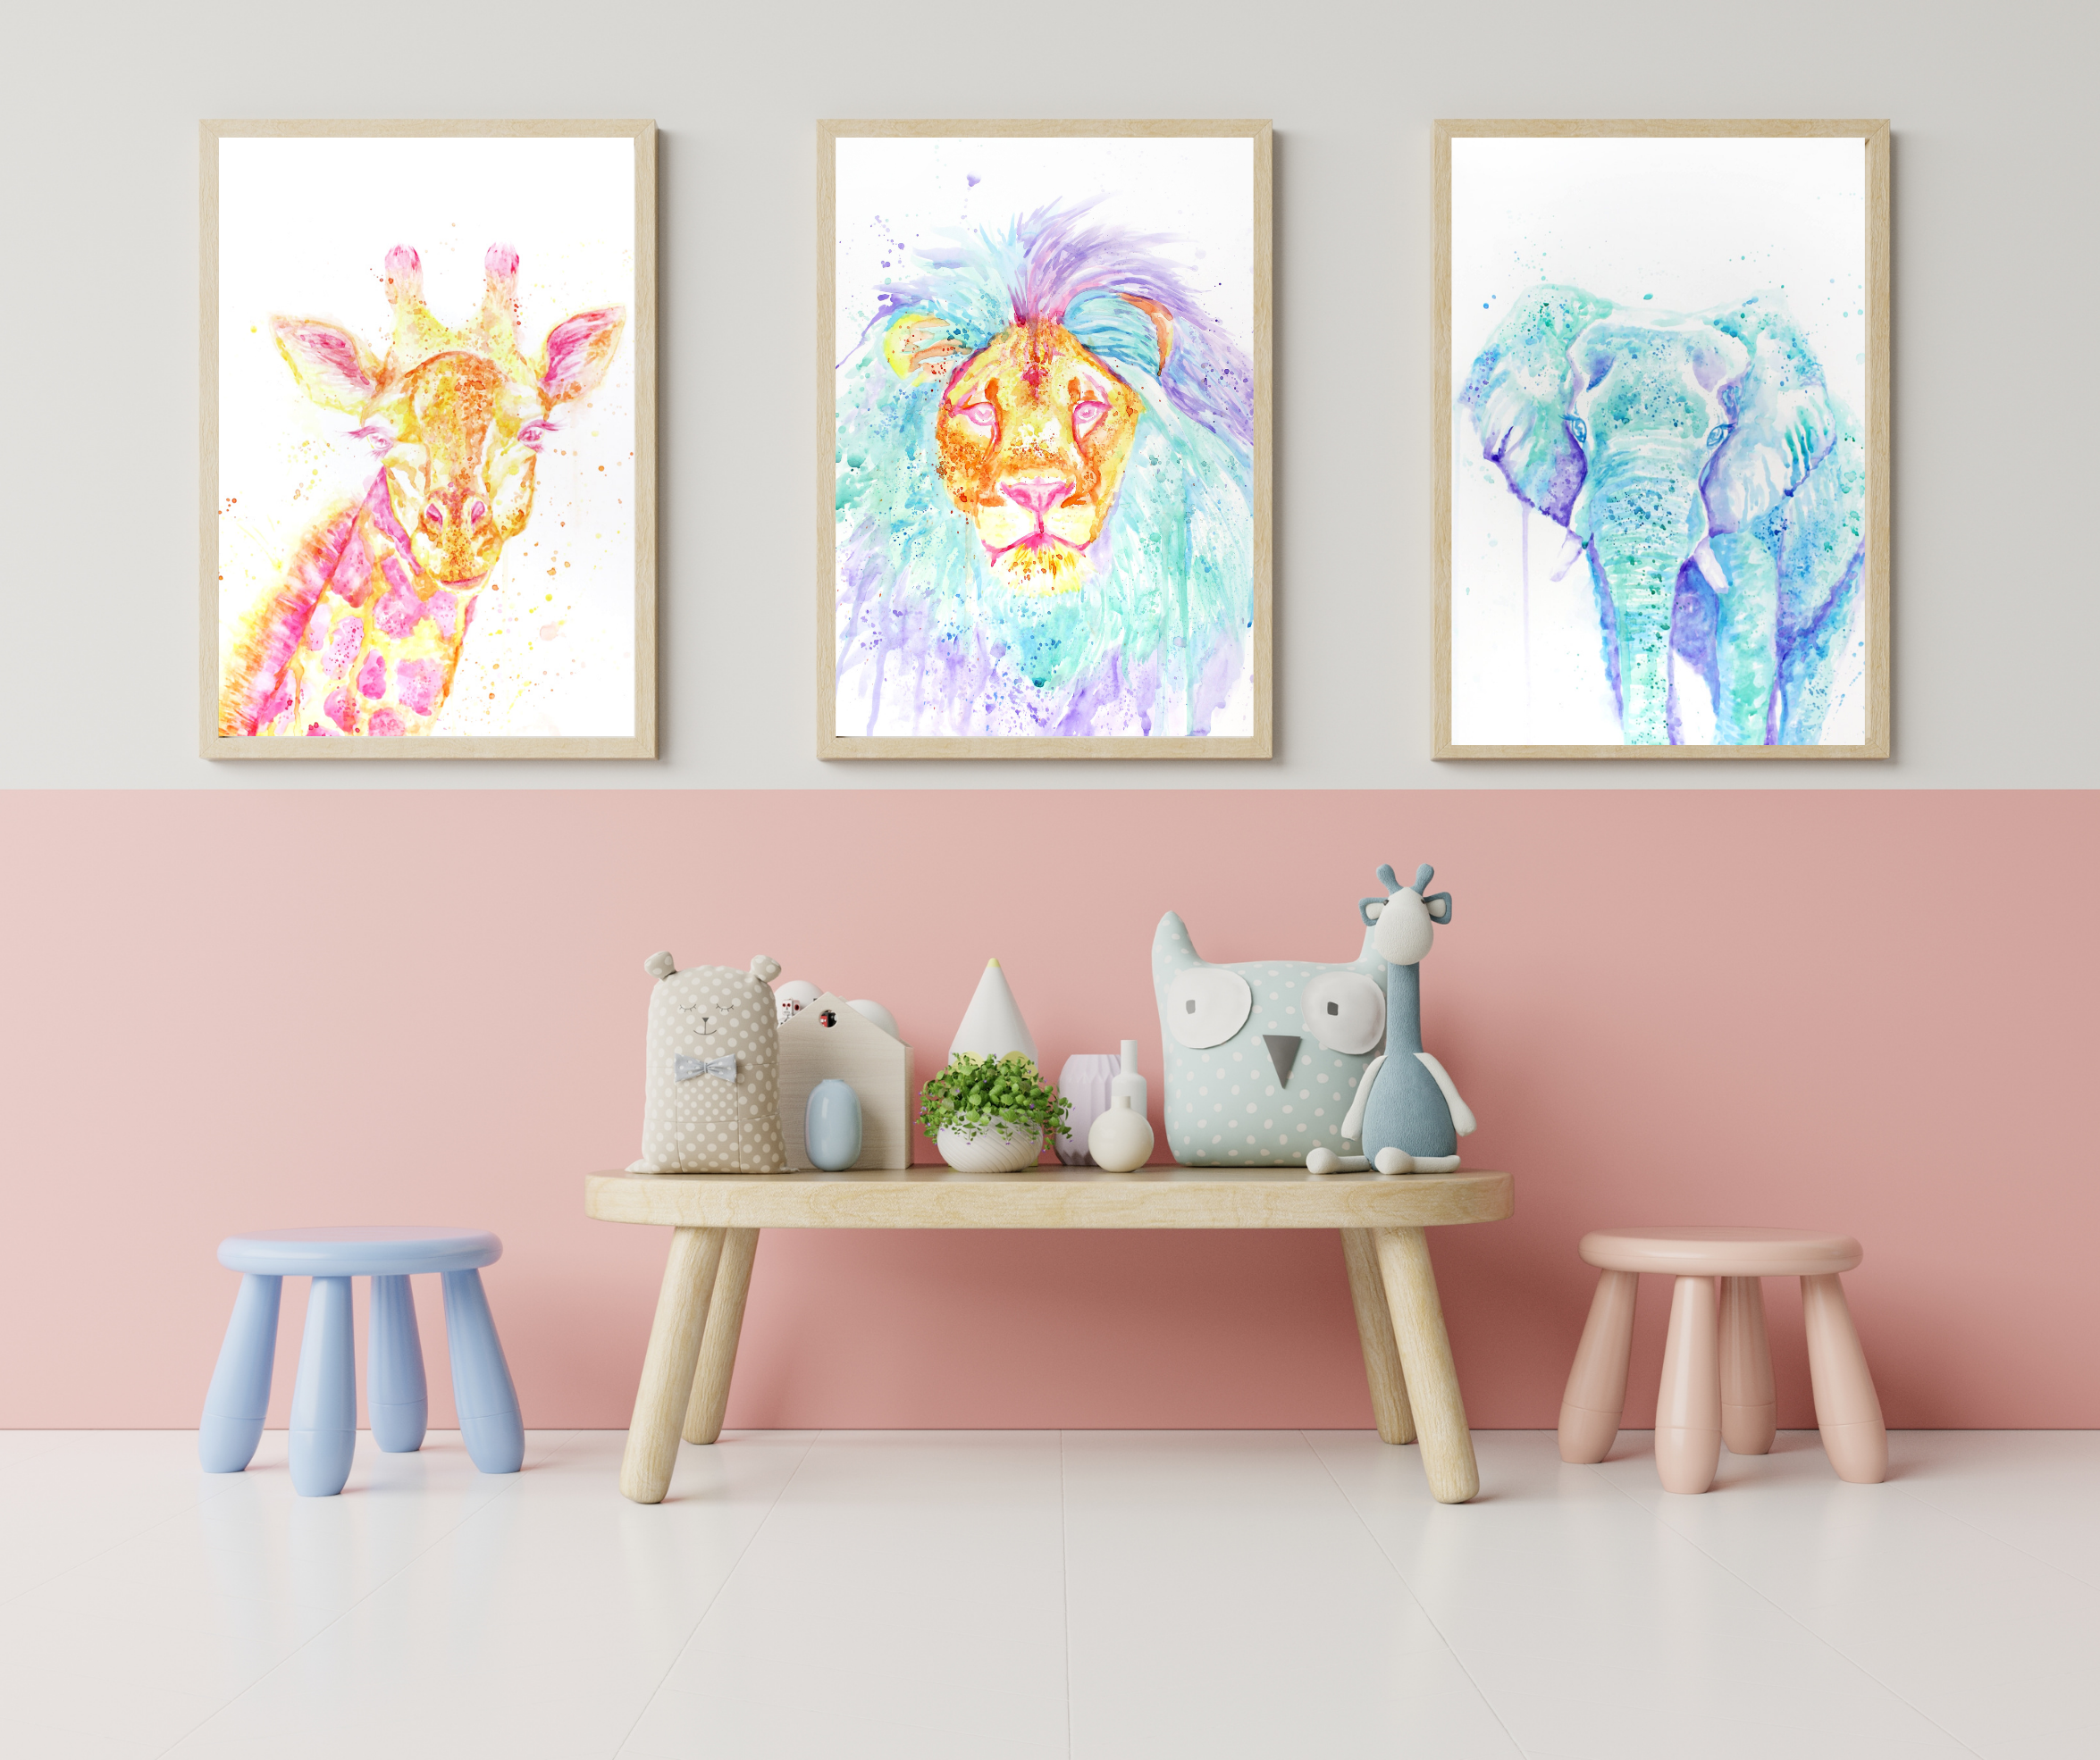 Nursery Art Triptych, TayloredIllustration Custom Nursery Art, Watercolor Safari animals